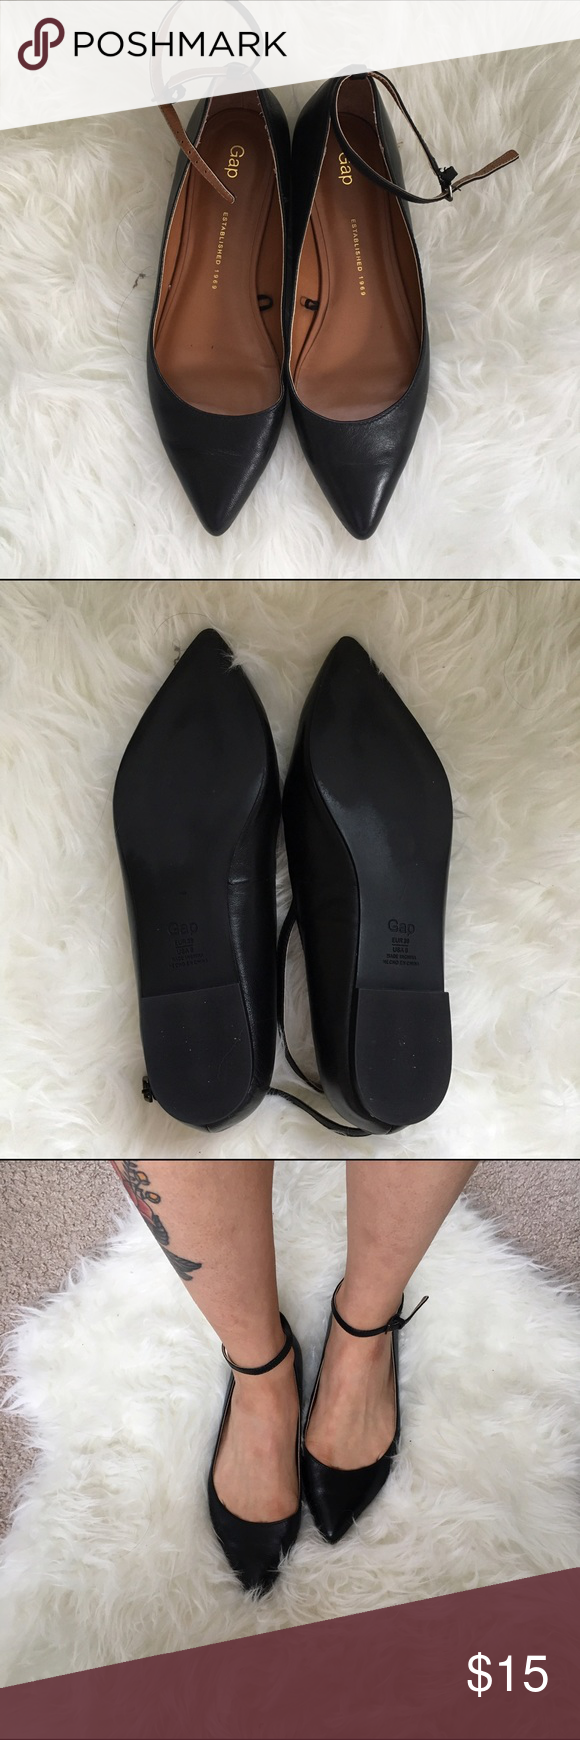 Gap leather pointed mary jane flats worn once real leather upper